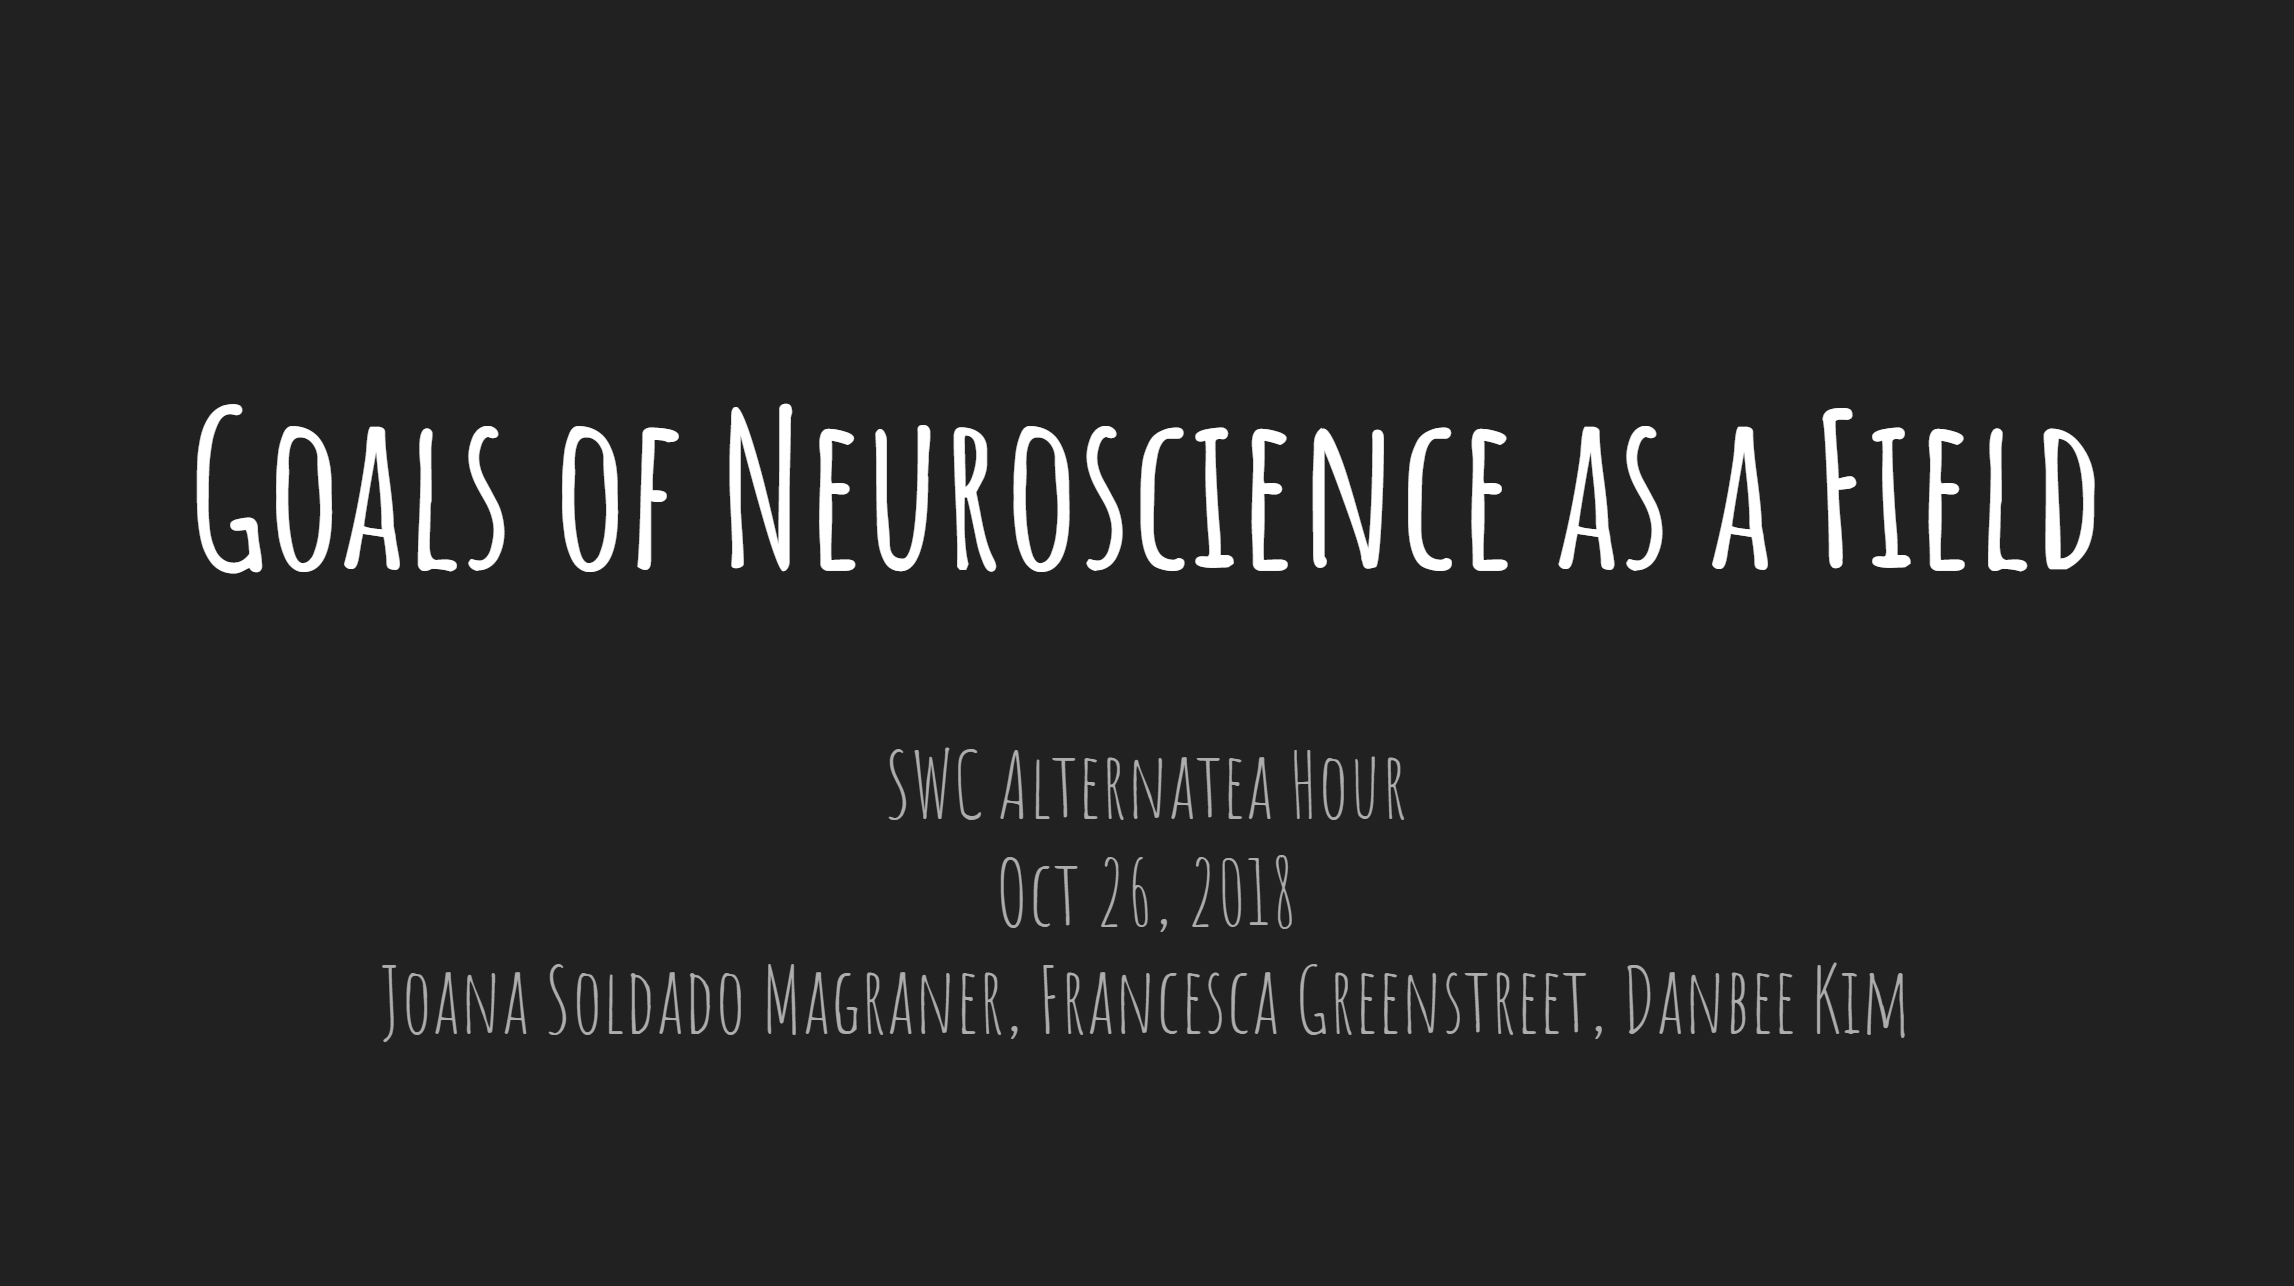 Goals of Neuroscience as a Field, a discussion with the SWC community